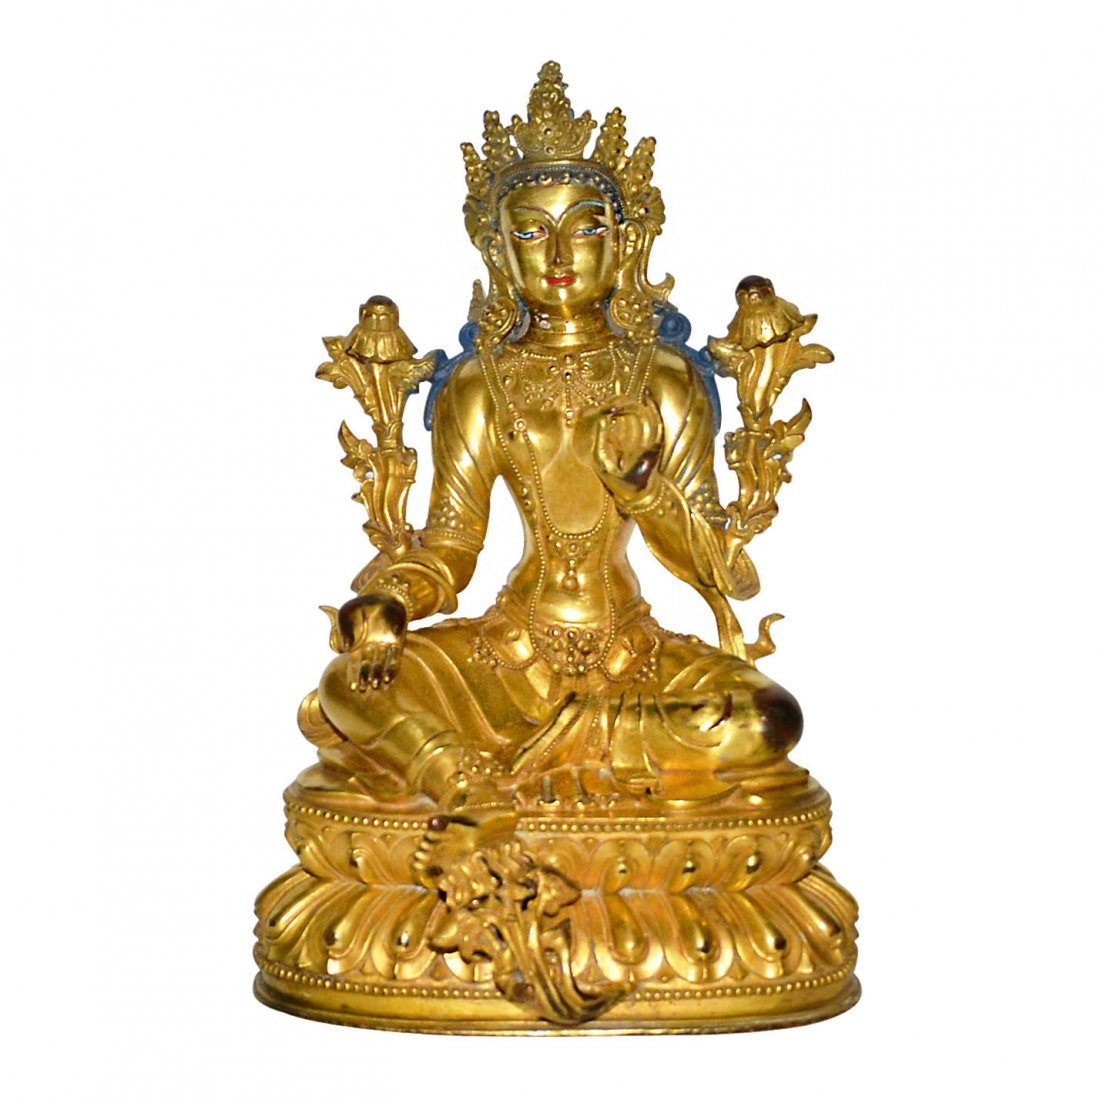 A Rare Gilt-Bronze and Pigment Painted Figure of Tara